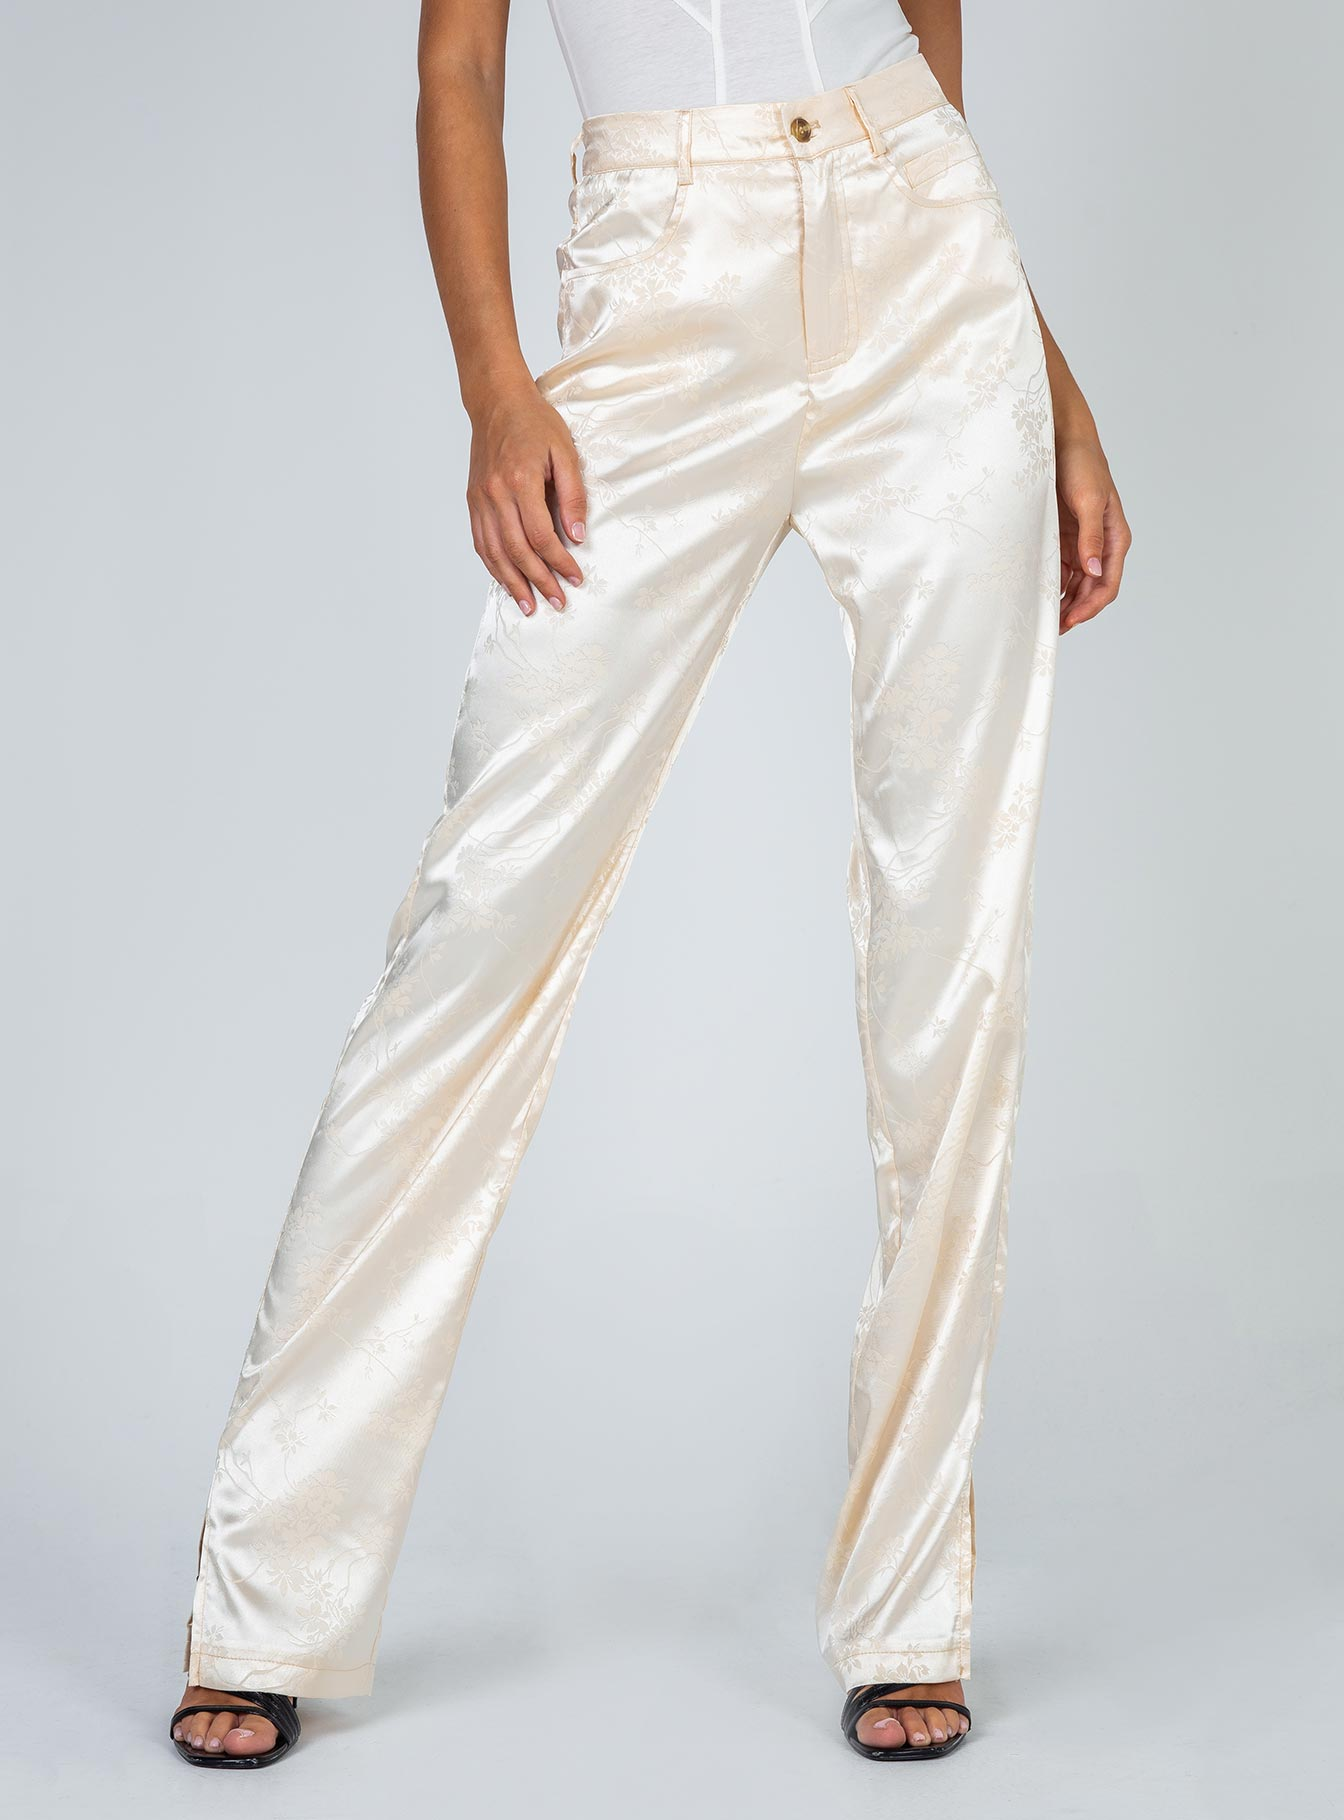 St Germain Pants